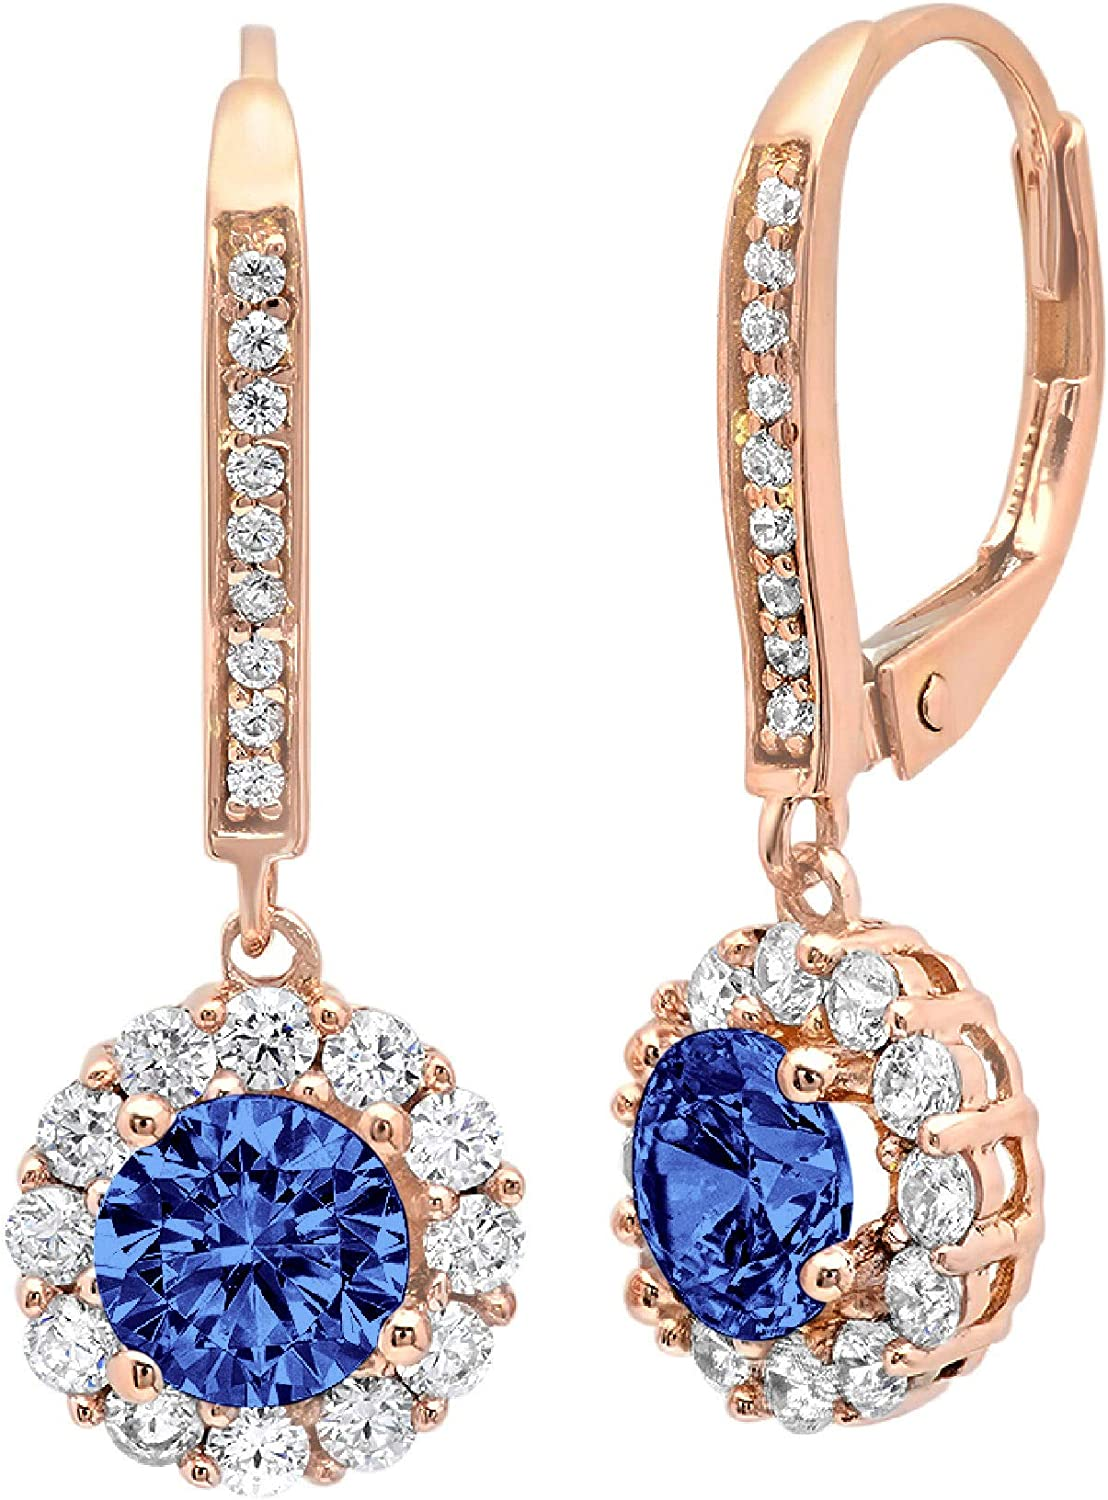 3.45ct Brilliant Round Cut Halo Solitaire Flawless Genuine Simulated CZ Blue Tanzanite Gemstone Unisex Pair of Lever back Drop Dangle Designer Earrings Solid 14k Pink Rose Gold